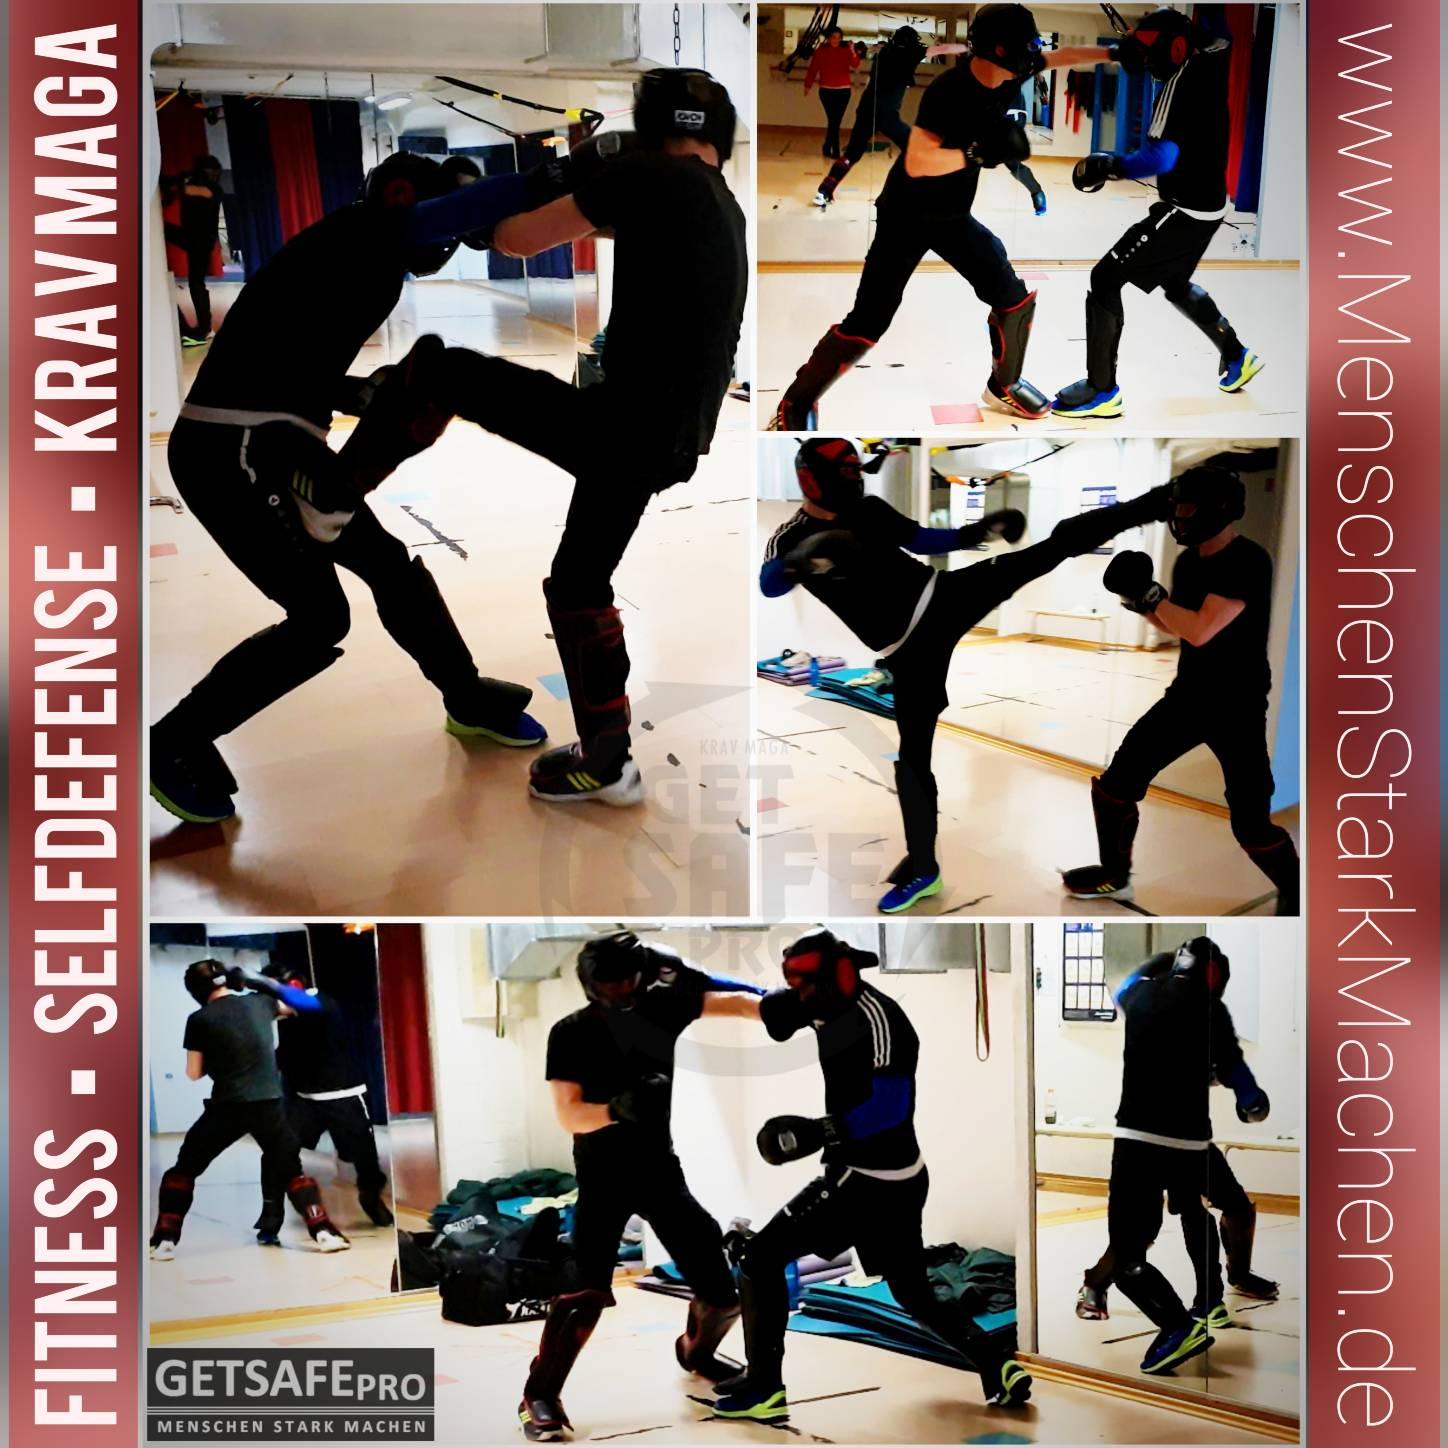 GETSAFEpro Krav Maga Training Mainz Selbstverteidigung Fitness-Center Mainz City (69)